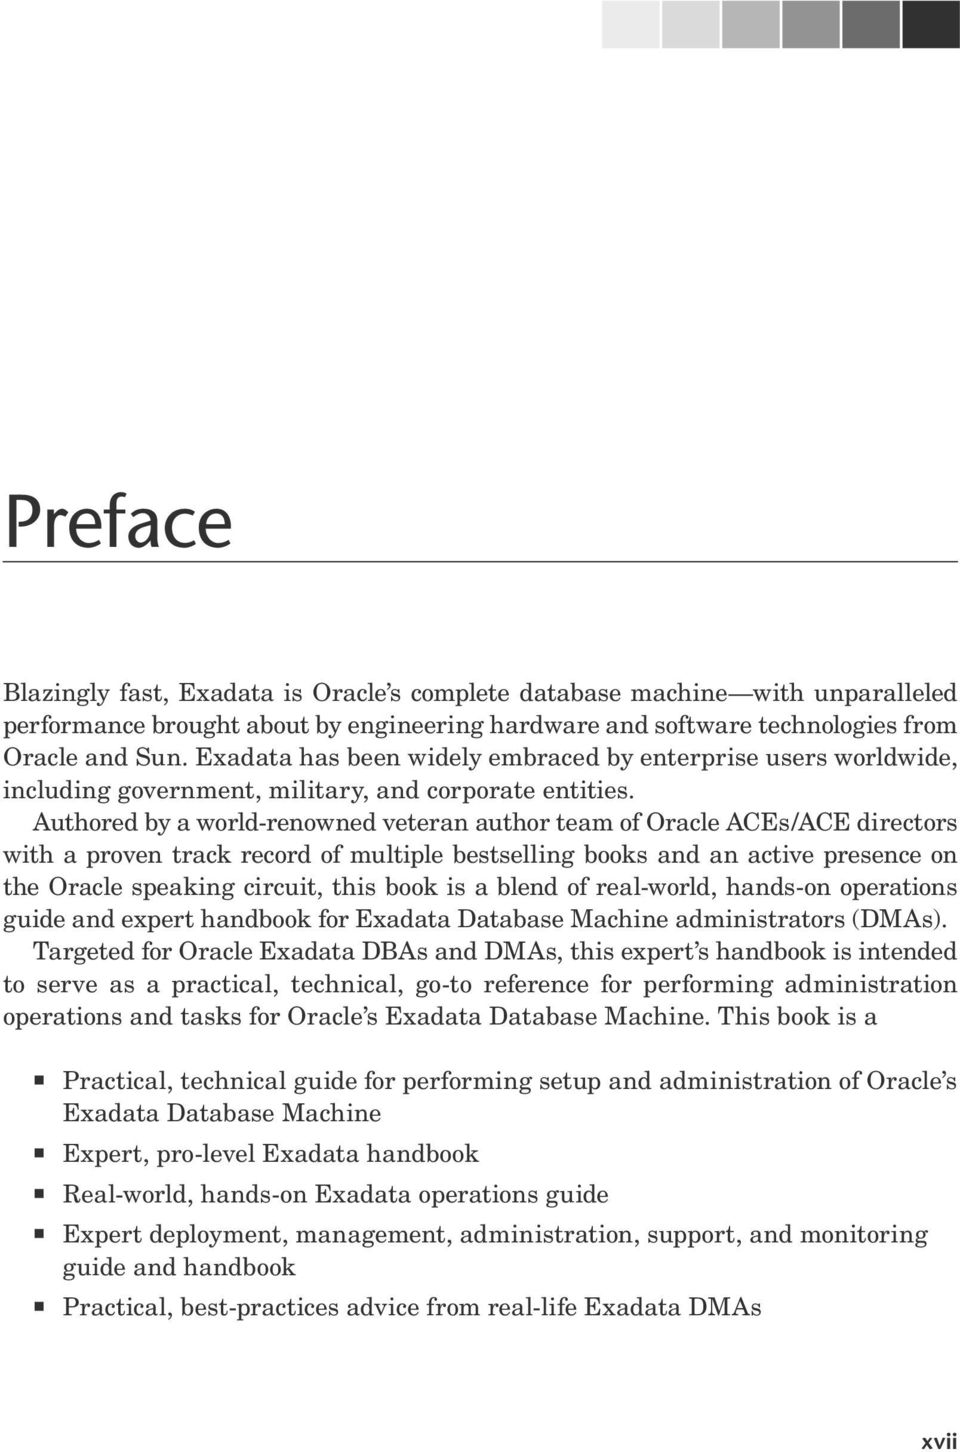 oracle exadata expert s handbook pdf rh docplayer net